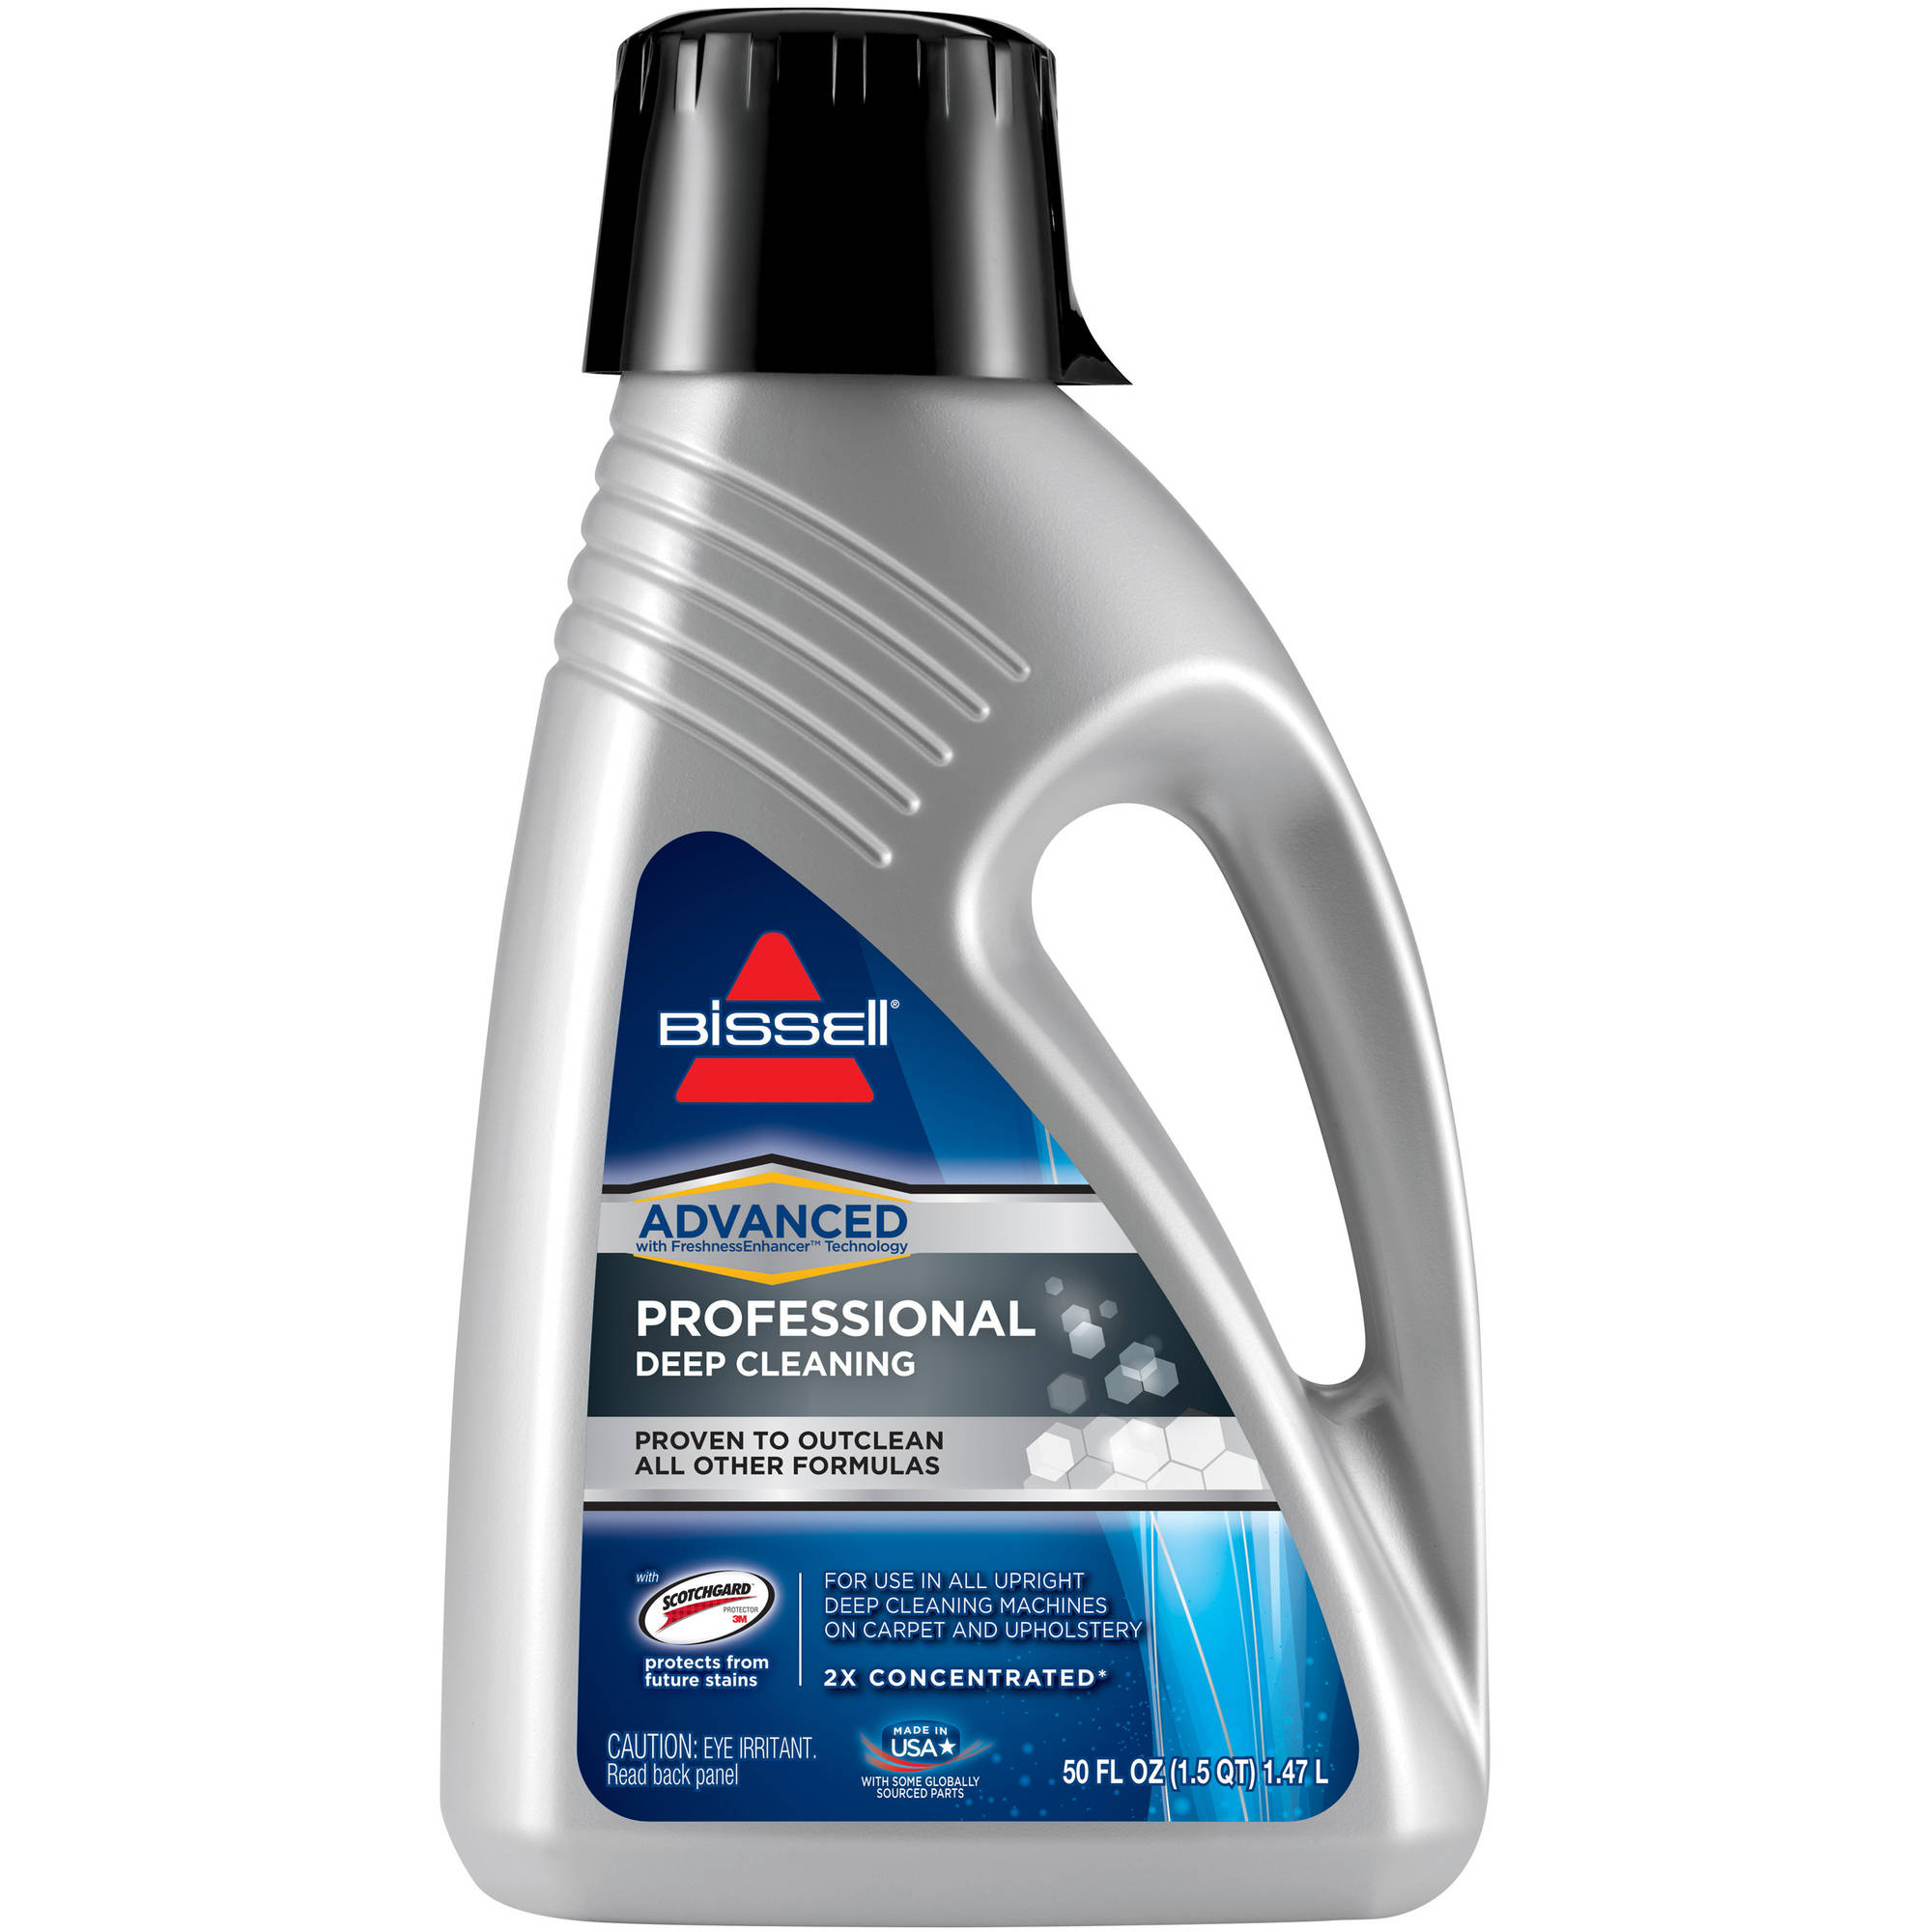 ... Cleaning Machine Middot Carpet Cleaners Al Walmart Middot Only At  Walmart ...